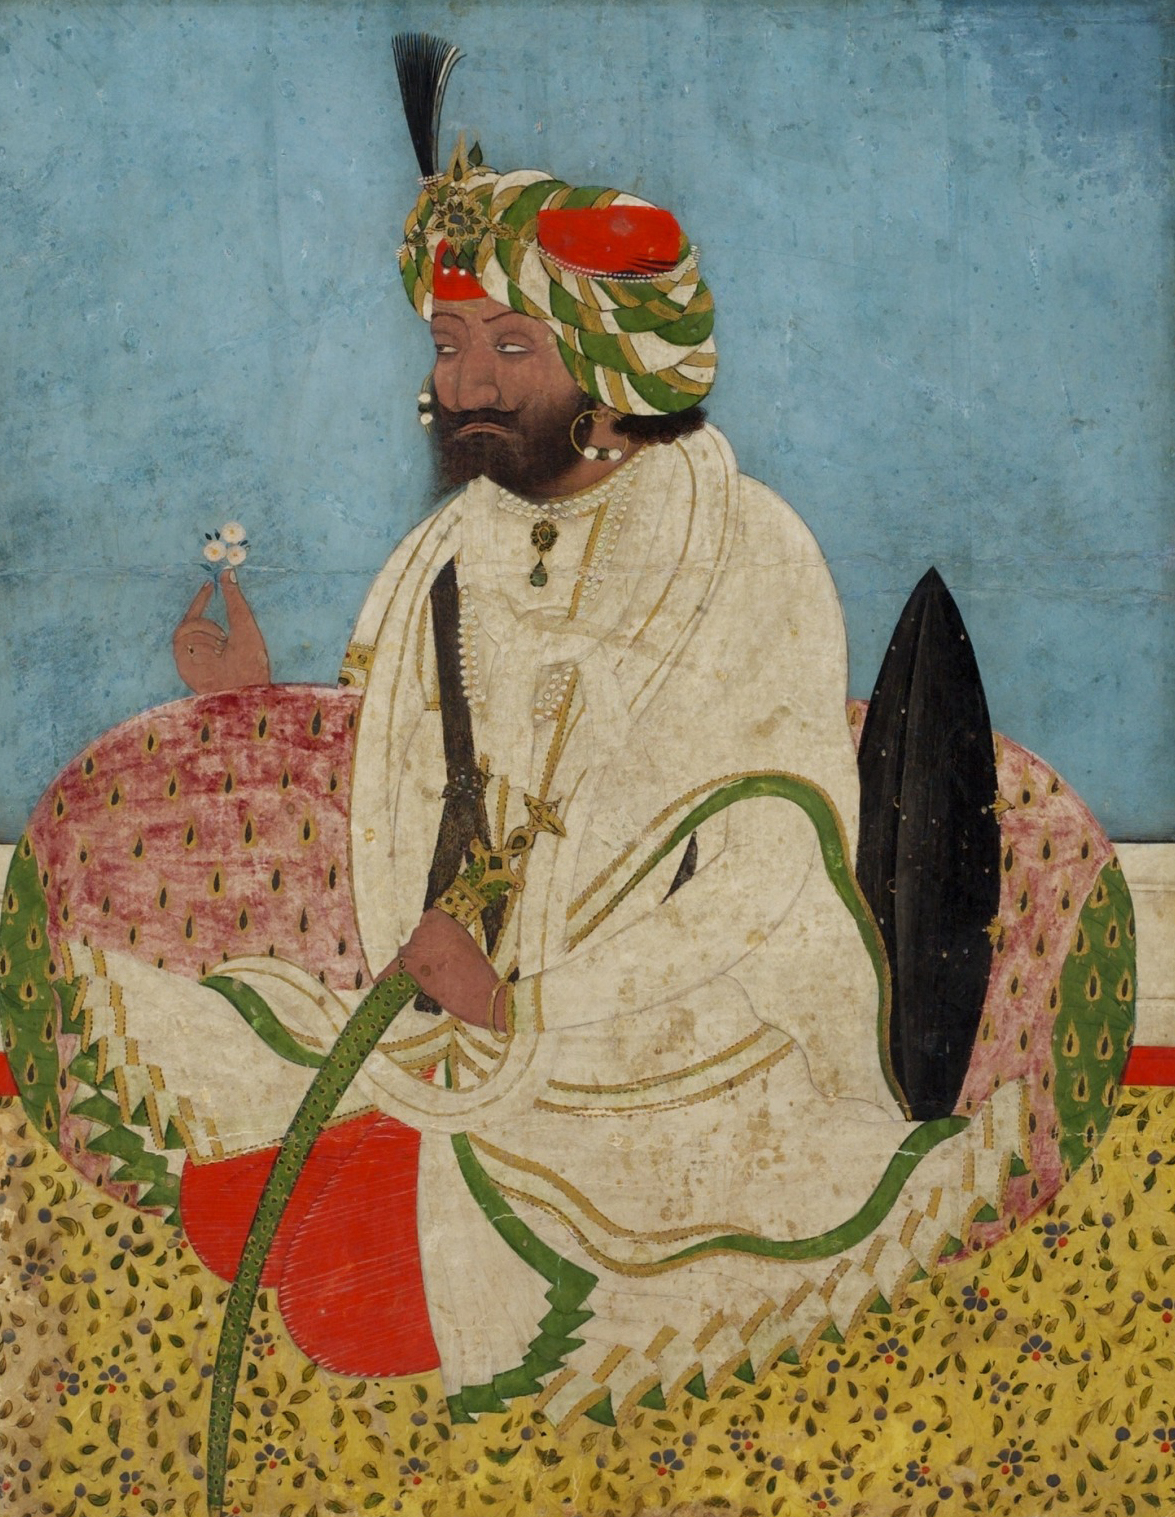 Maharaja_Gulab_Singh_of_Jammu_and_Kashmir.jpg